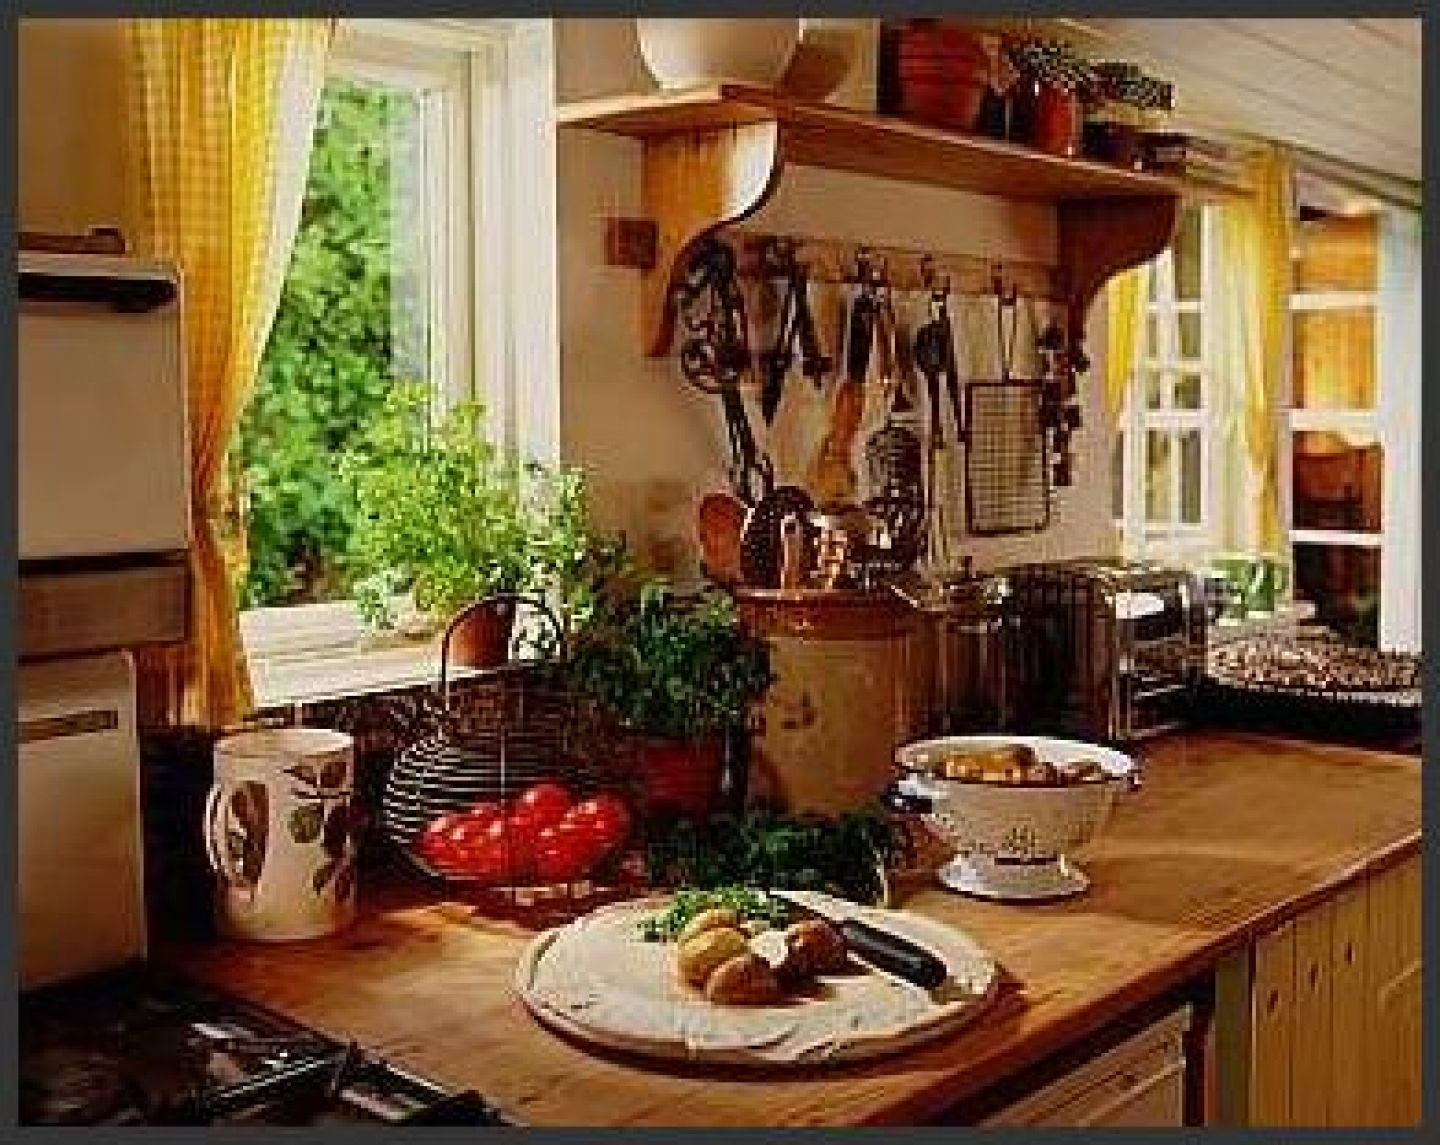 country interior design - 1000+ images about kitchen on Pinterest French country kitchens ...